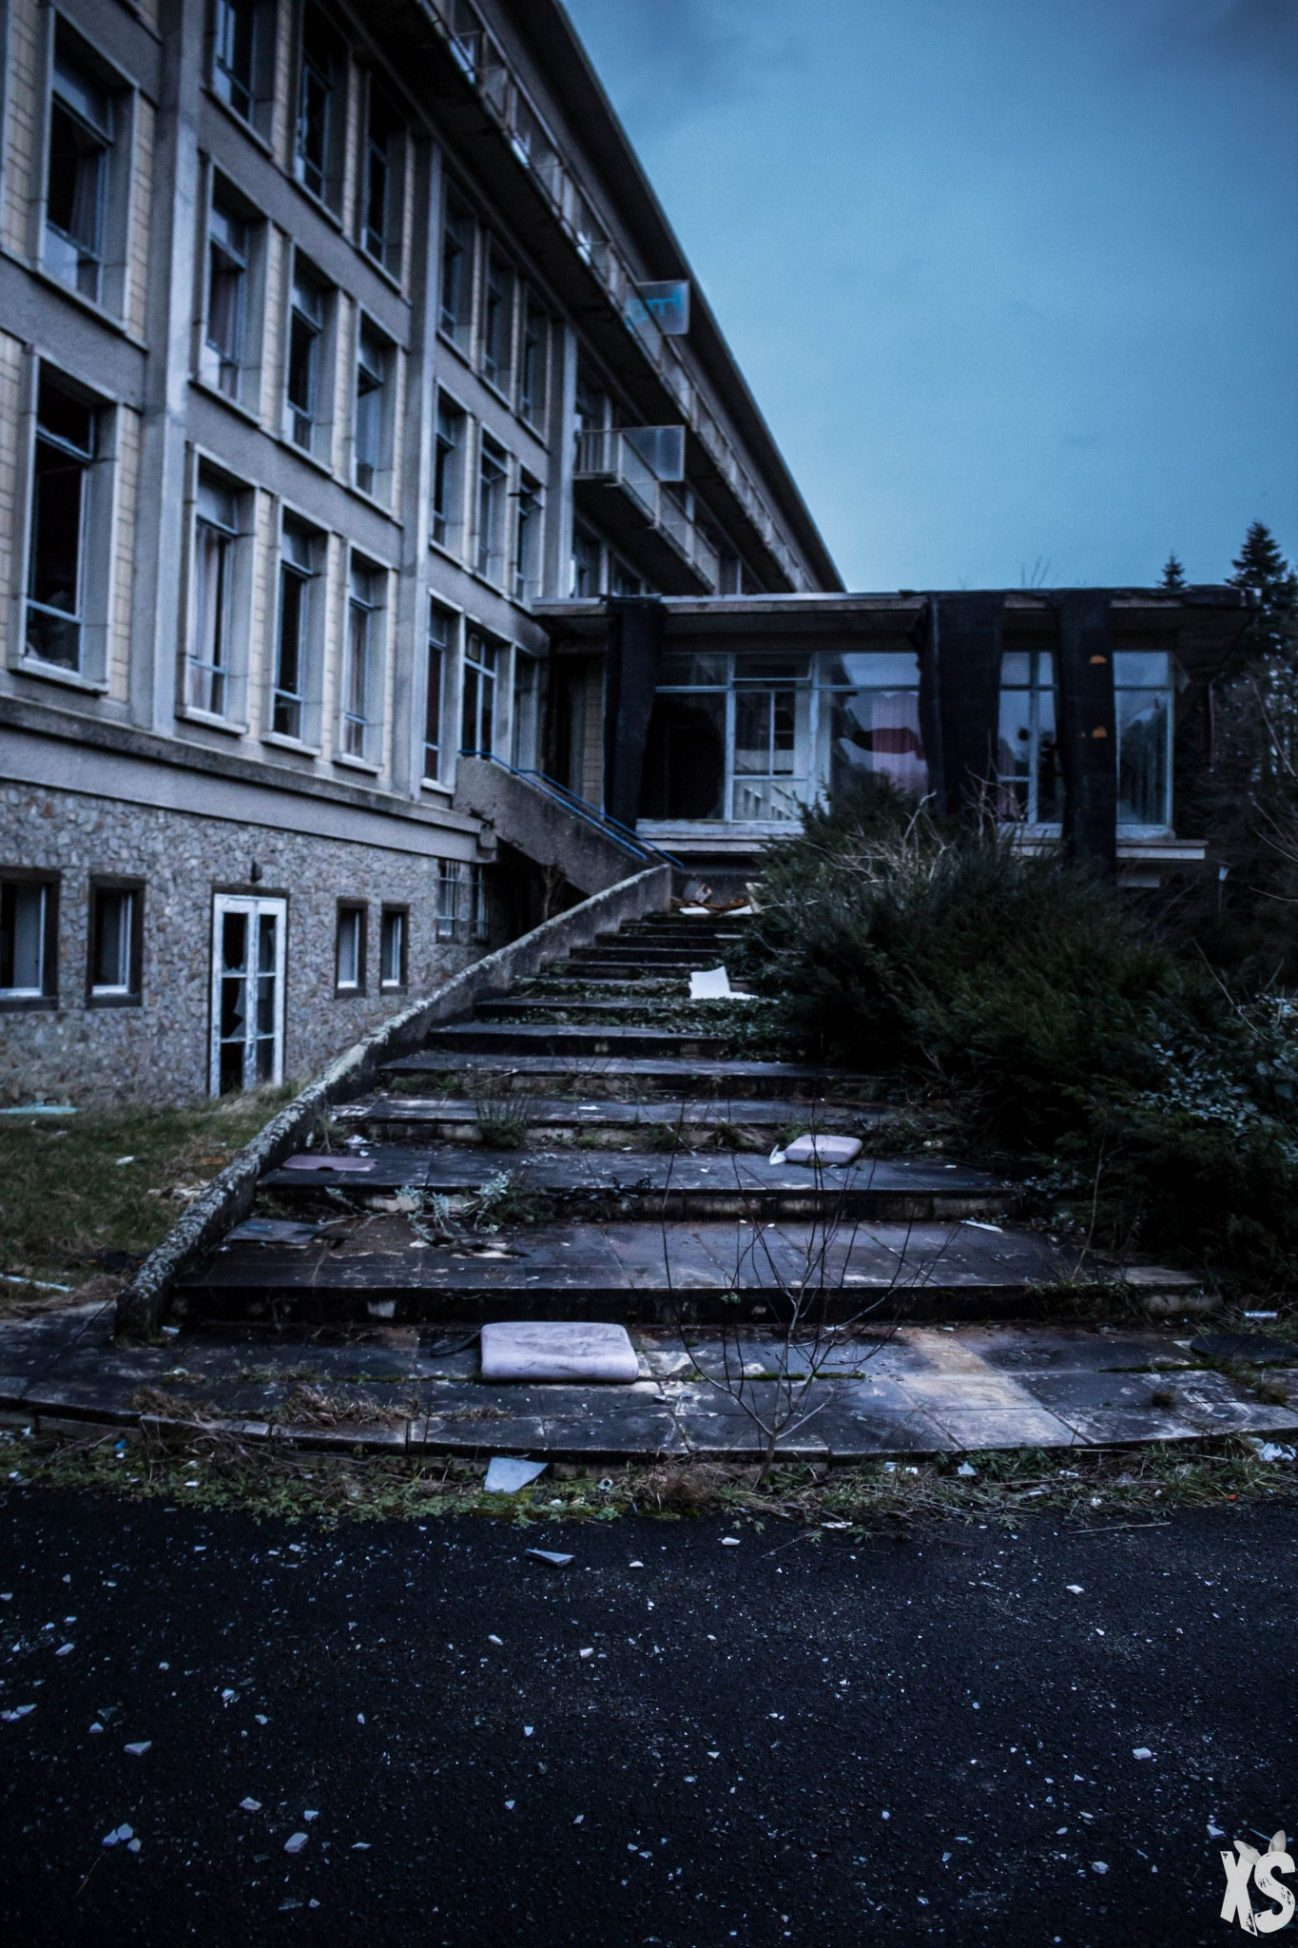 Sanatorium de Bathory